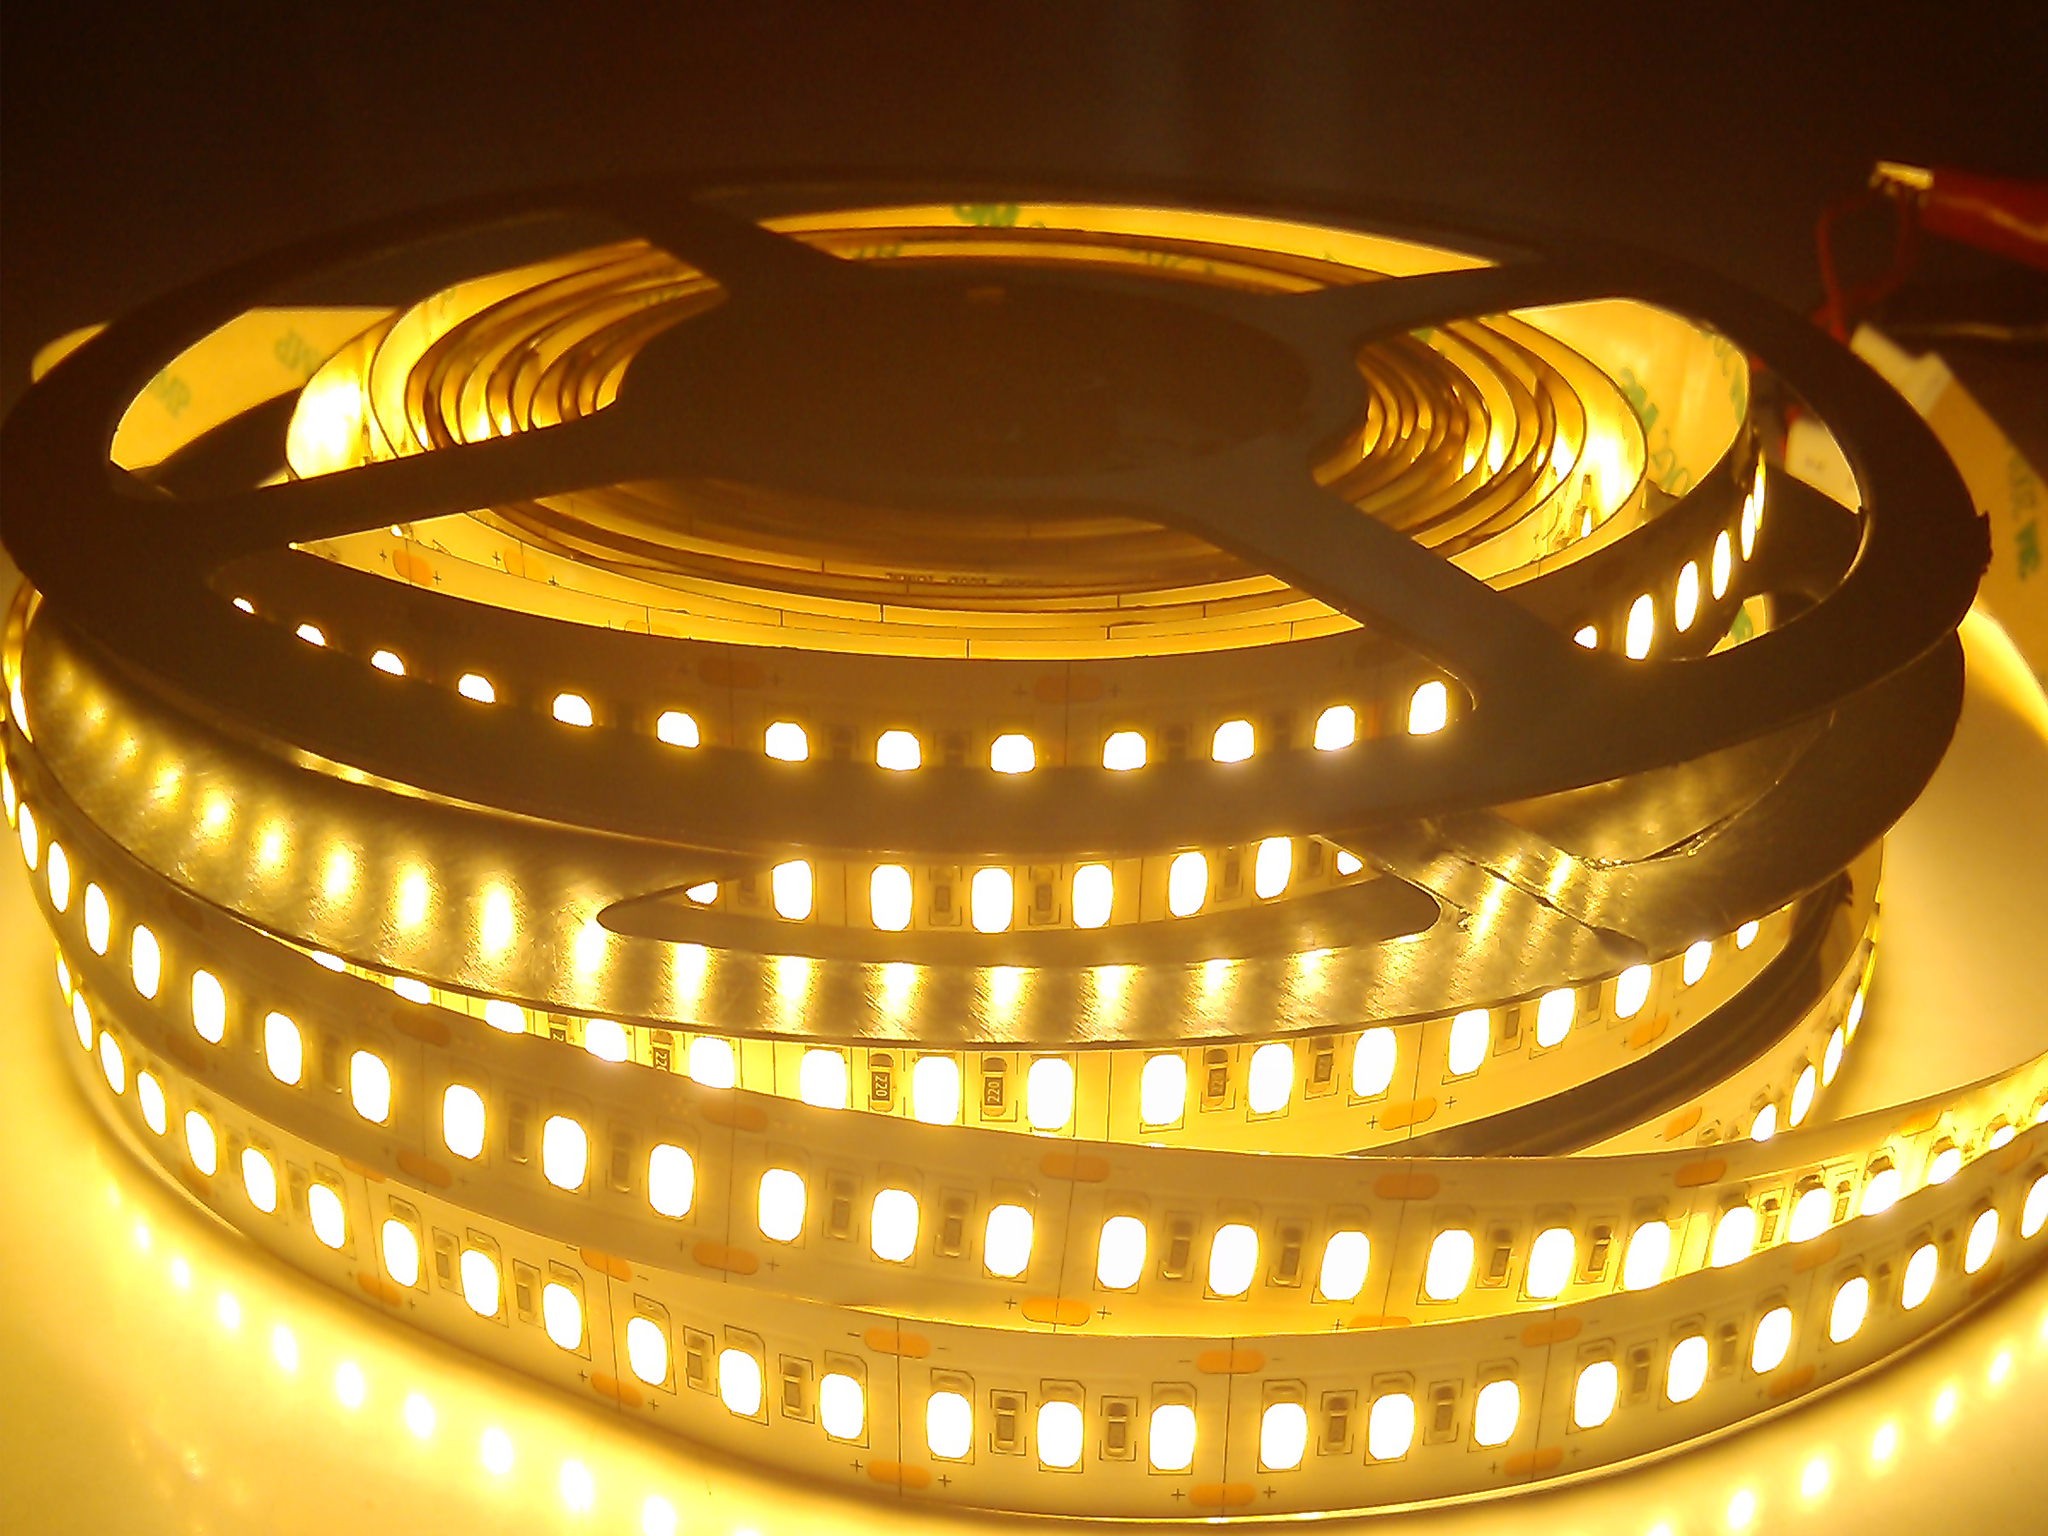 SMD5630-120leds 30W/m warm white IP20 LED flexible strip light